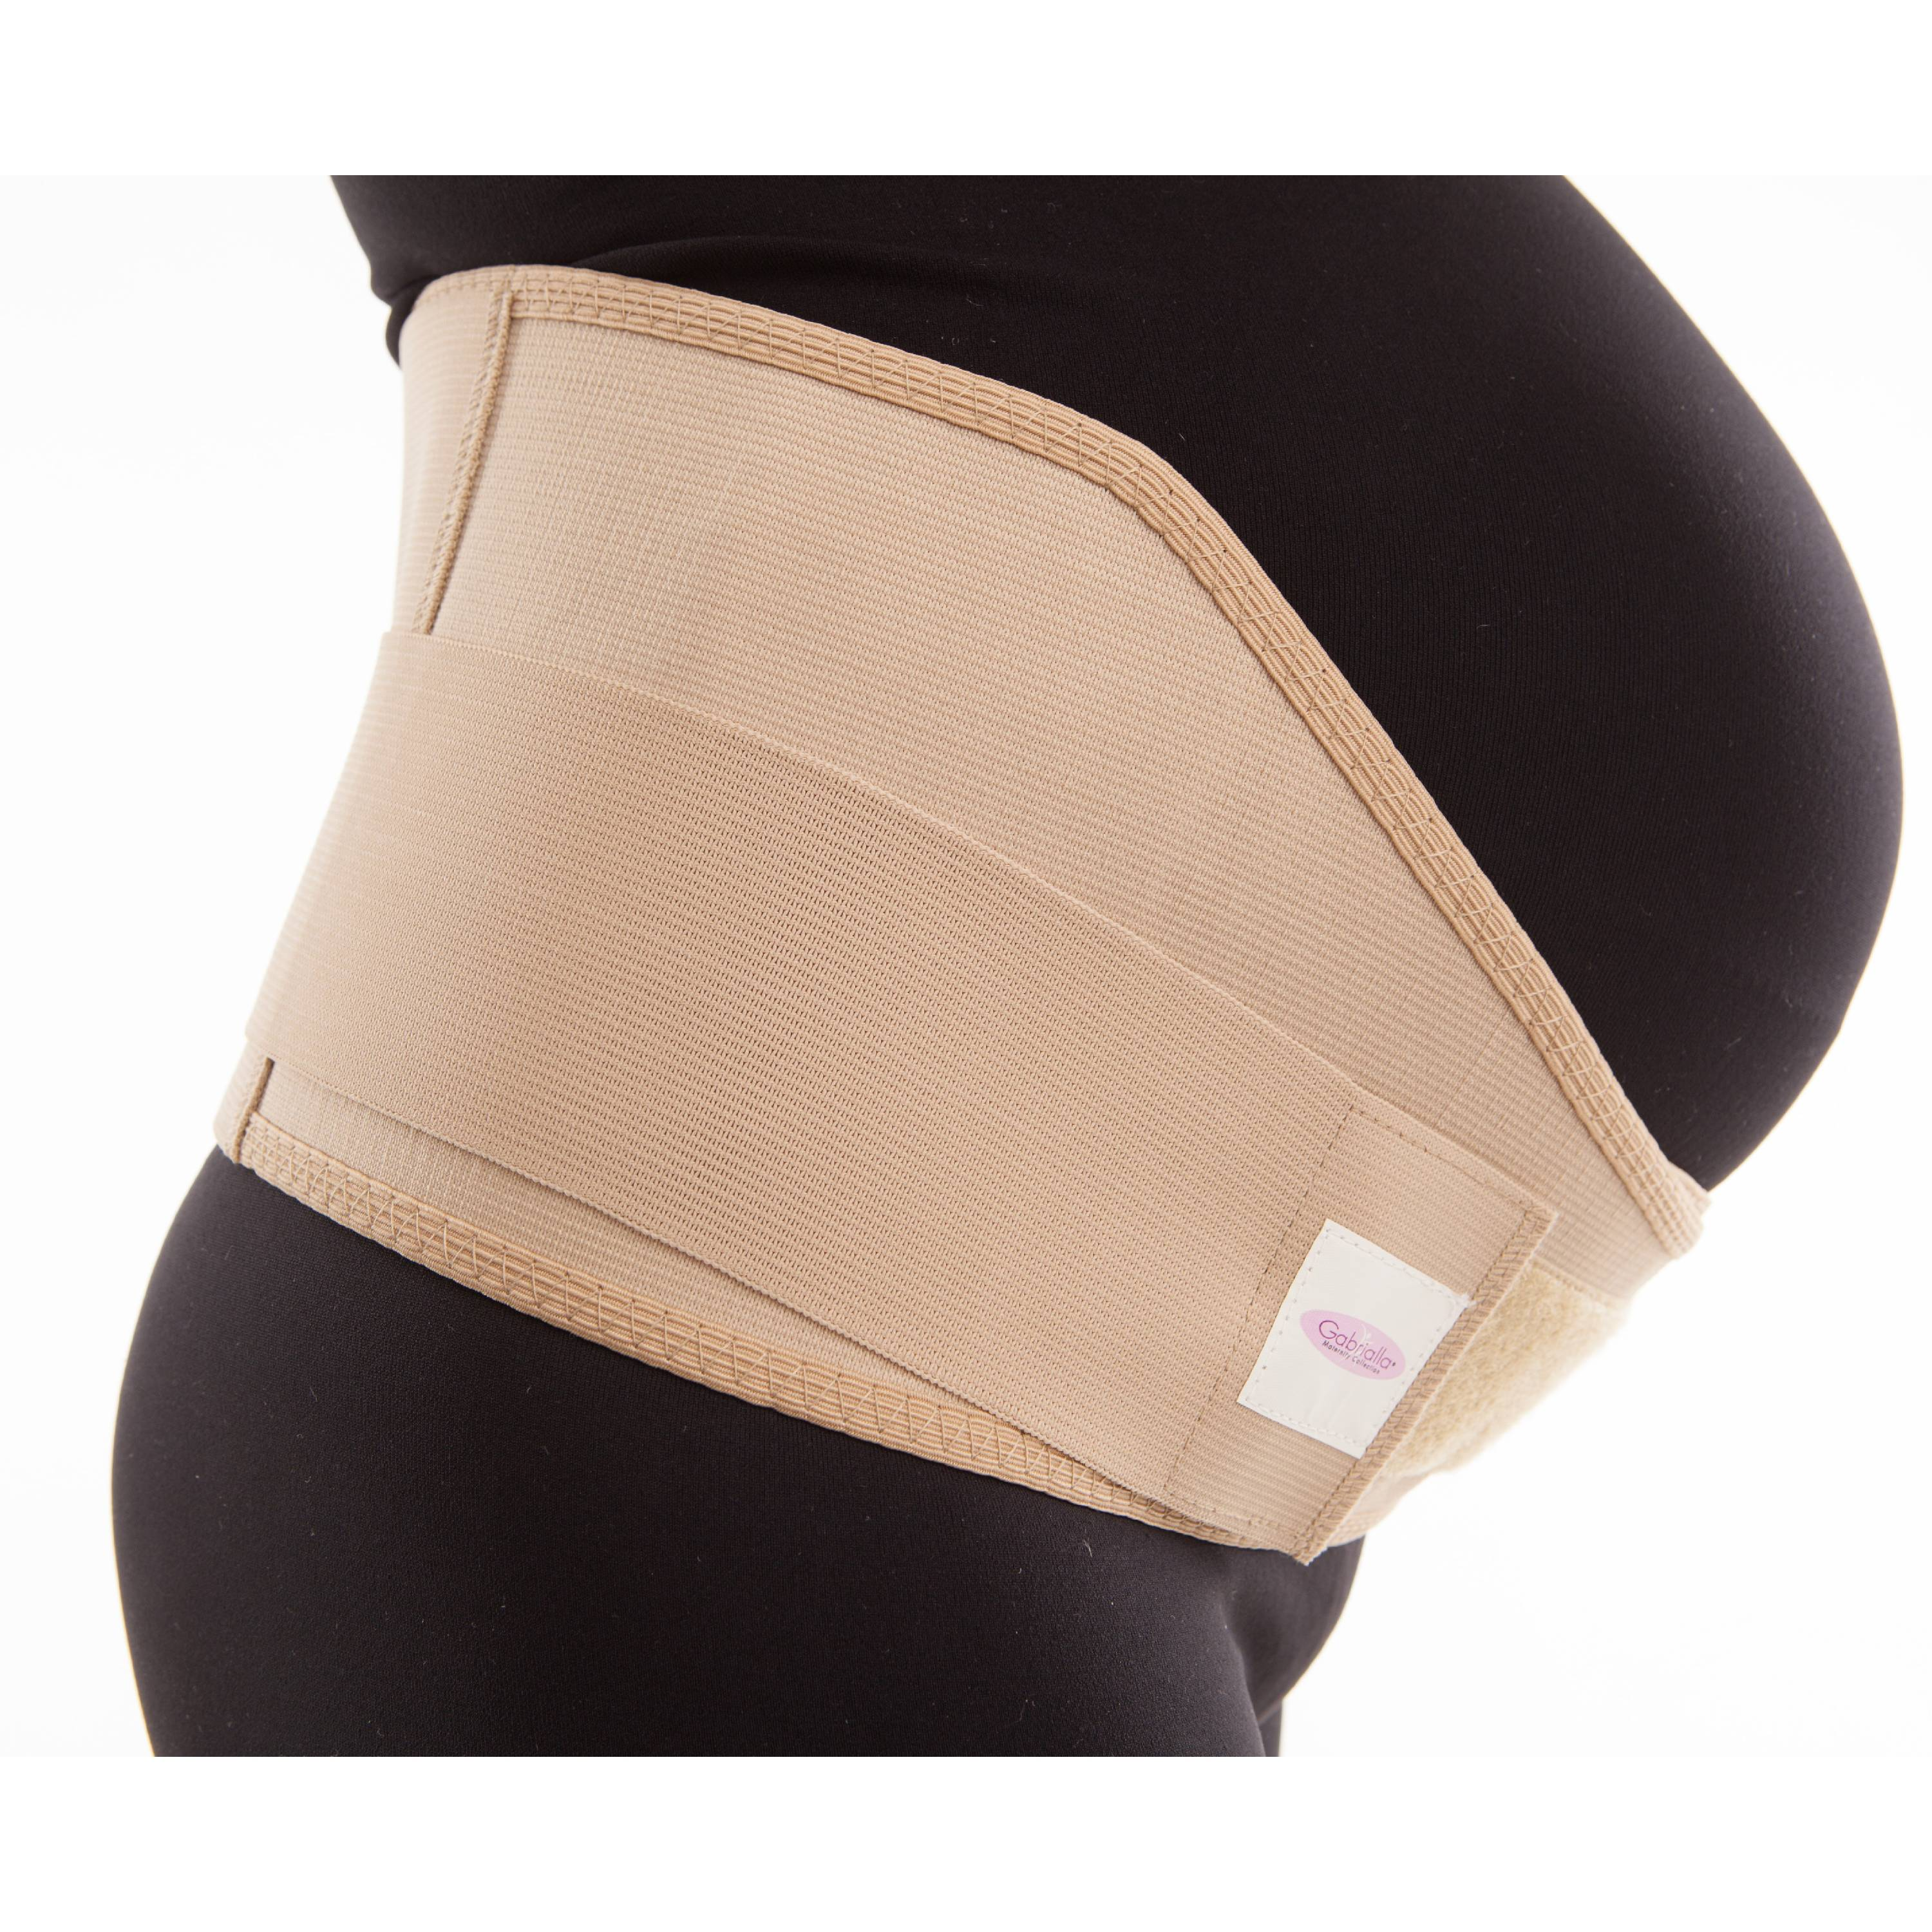 Maternity Medium Support Belly Abdomen and Back Breathable Pregnancy Support Belt for Active Moms MS-96